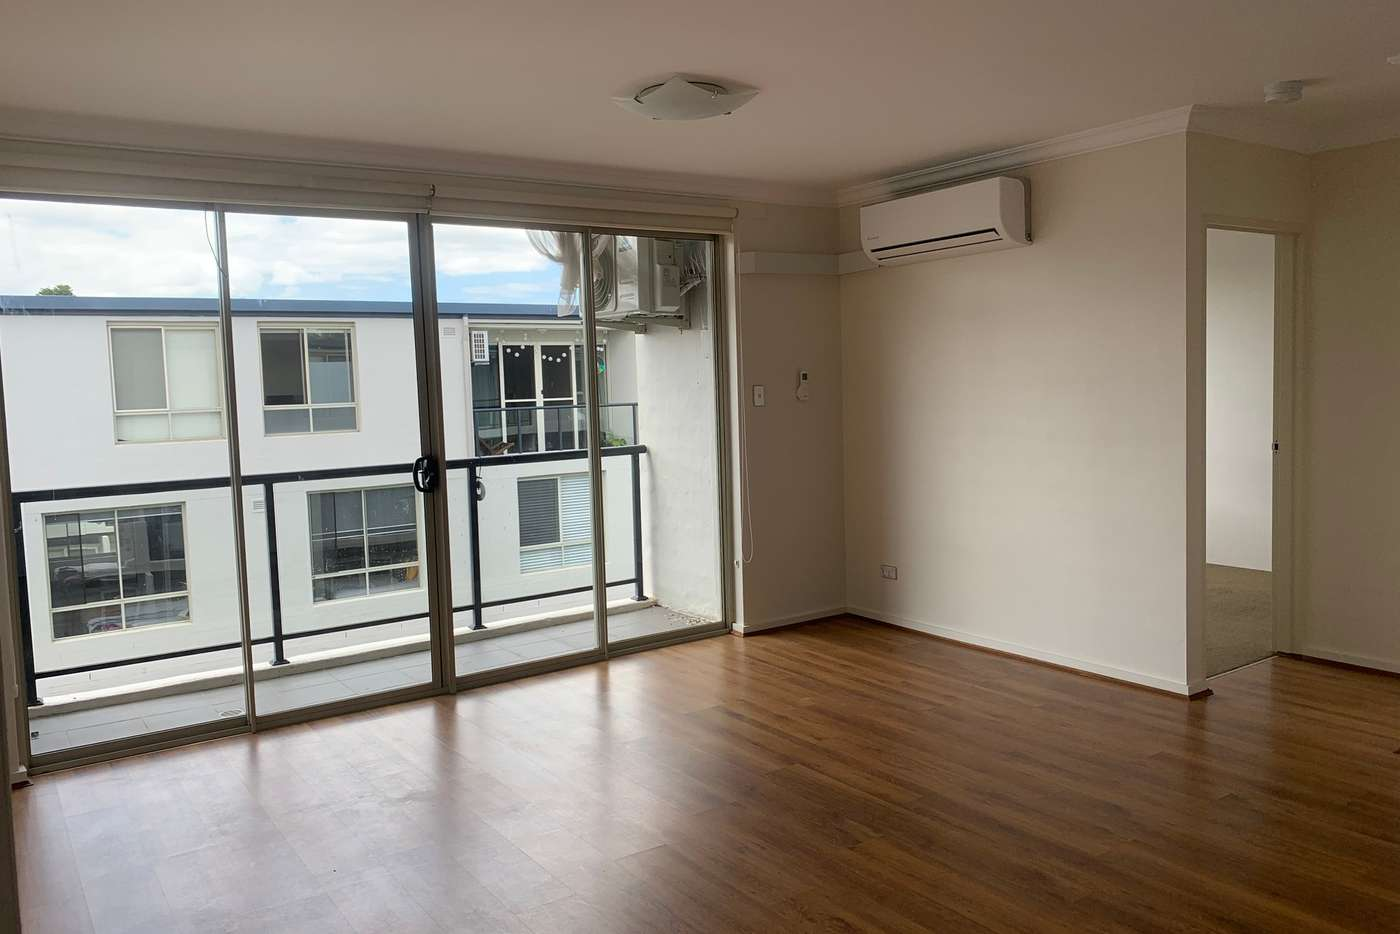 Seventh view of Homely apartment listing, 71/20 Herbert Street, West Ryde NSW 2114